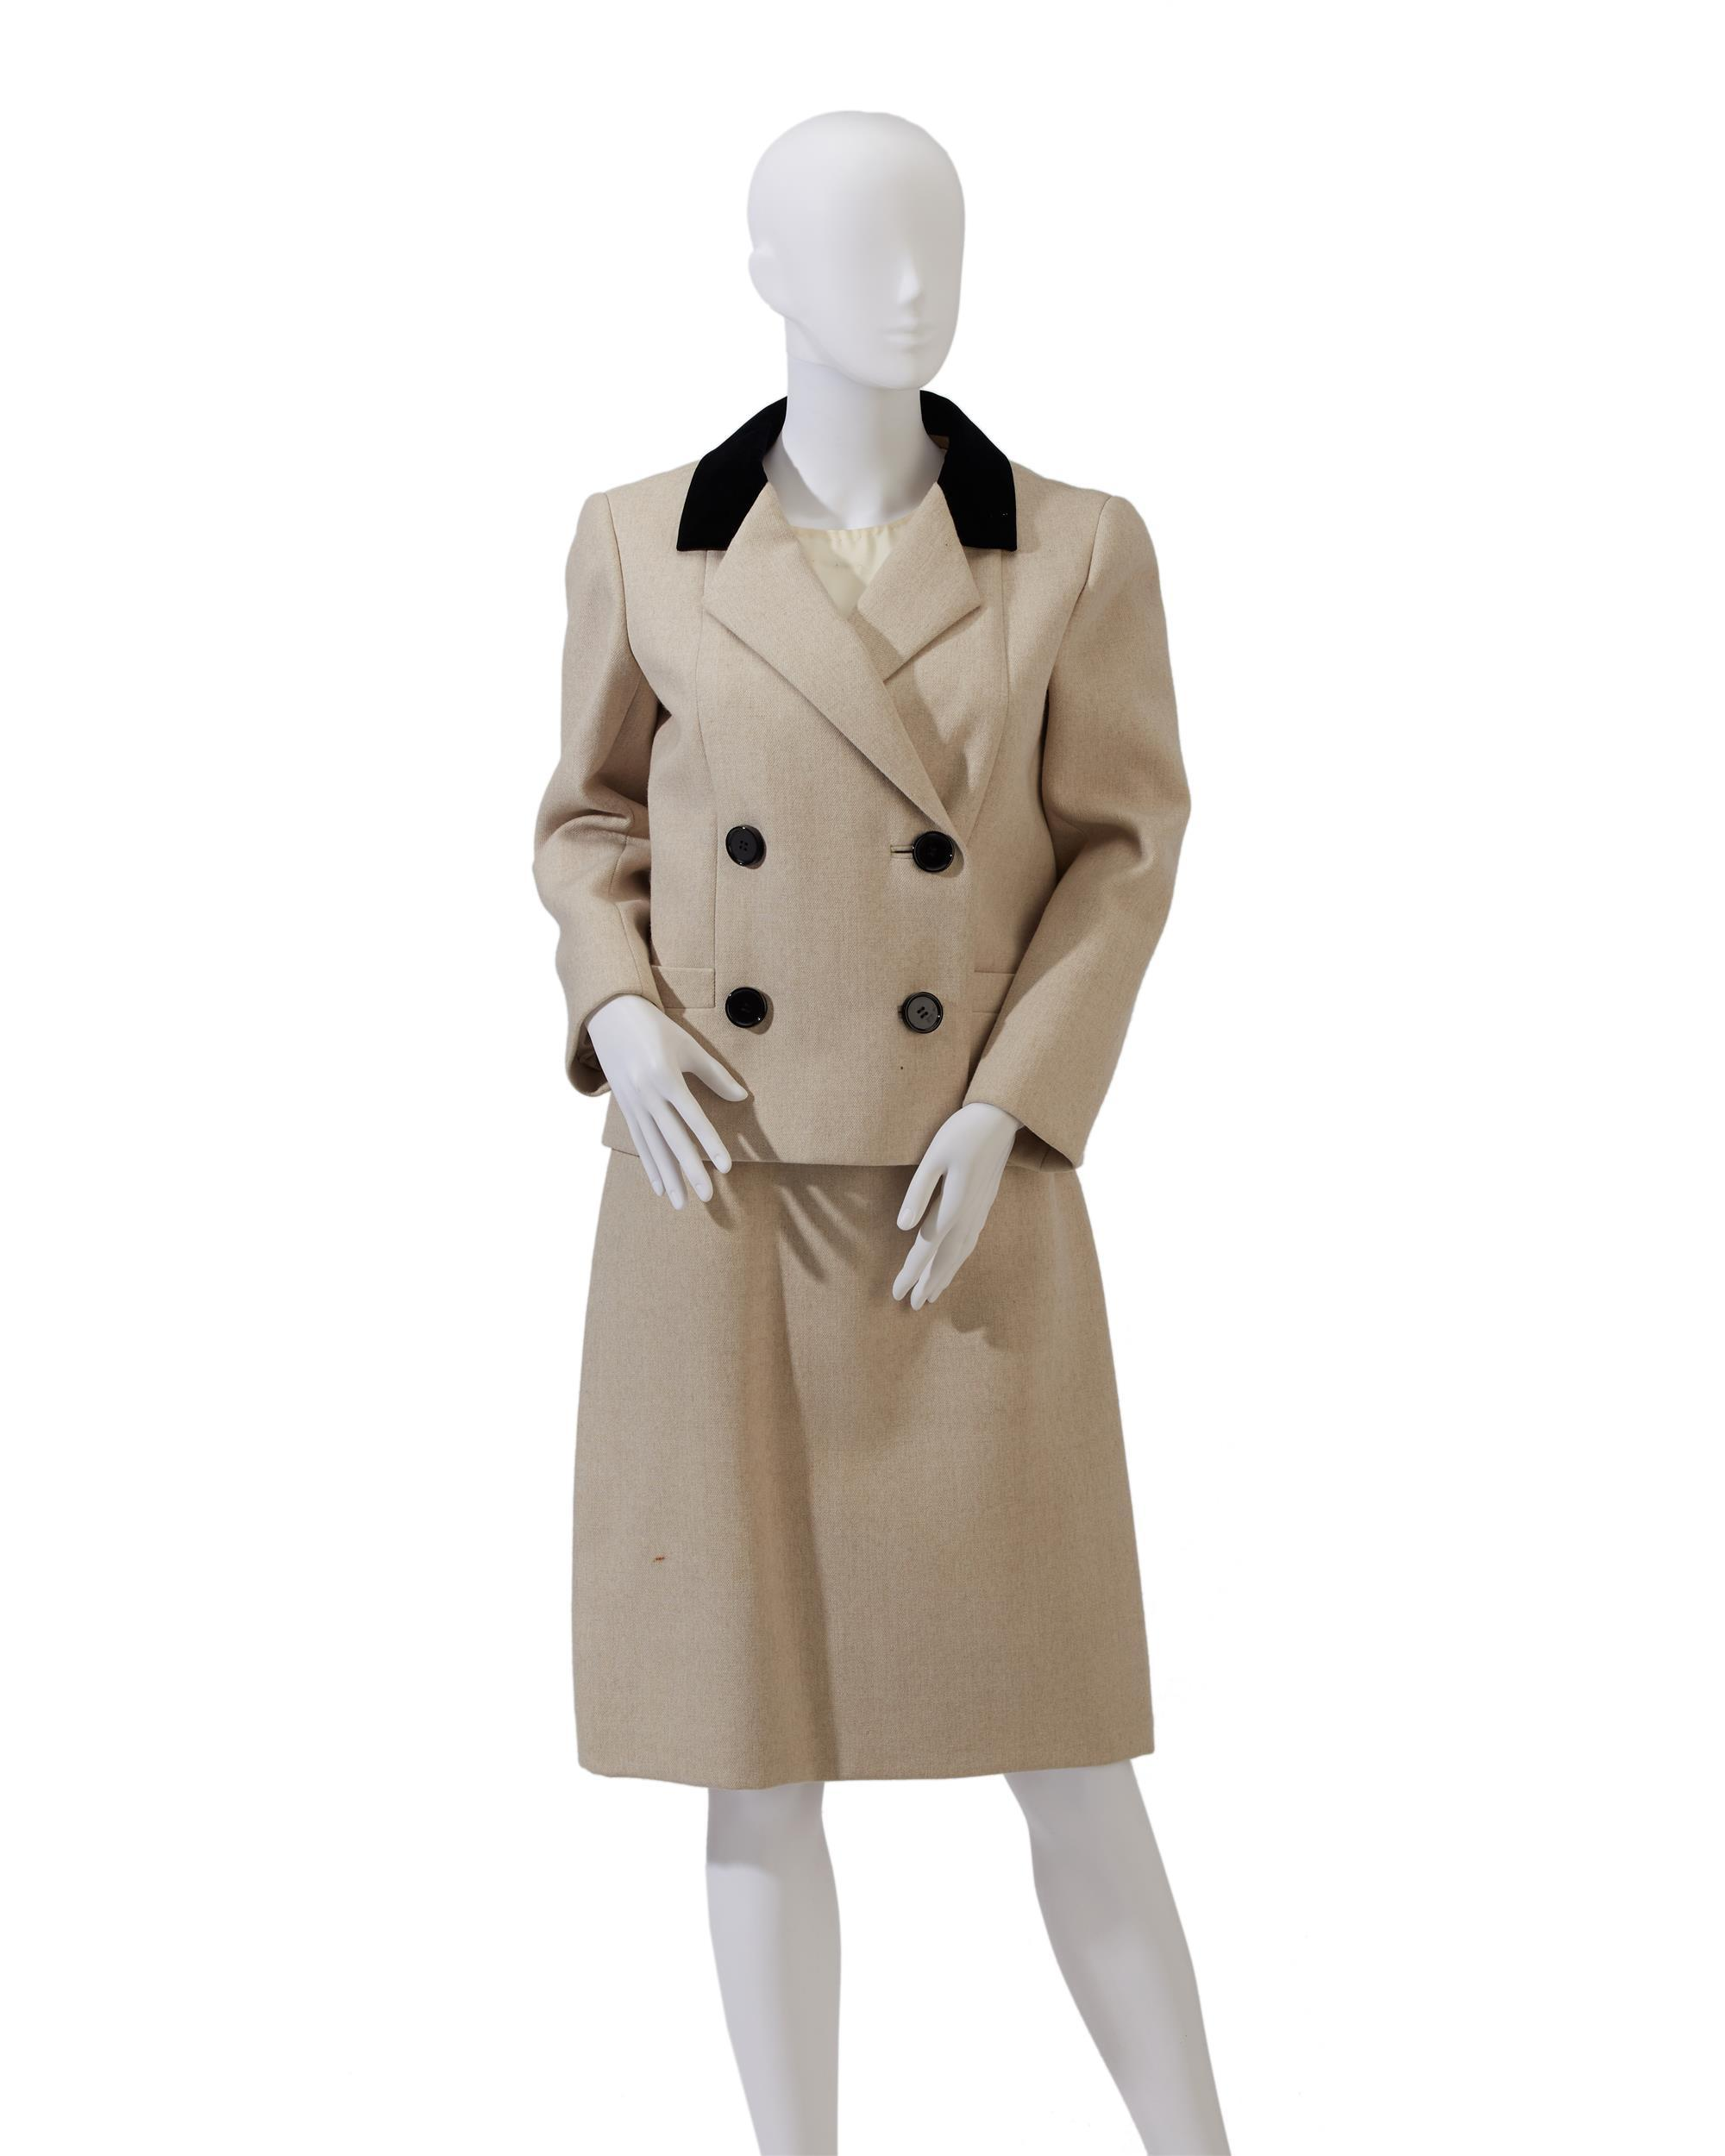 A Norman Norell skirt suit